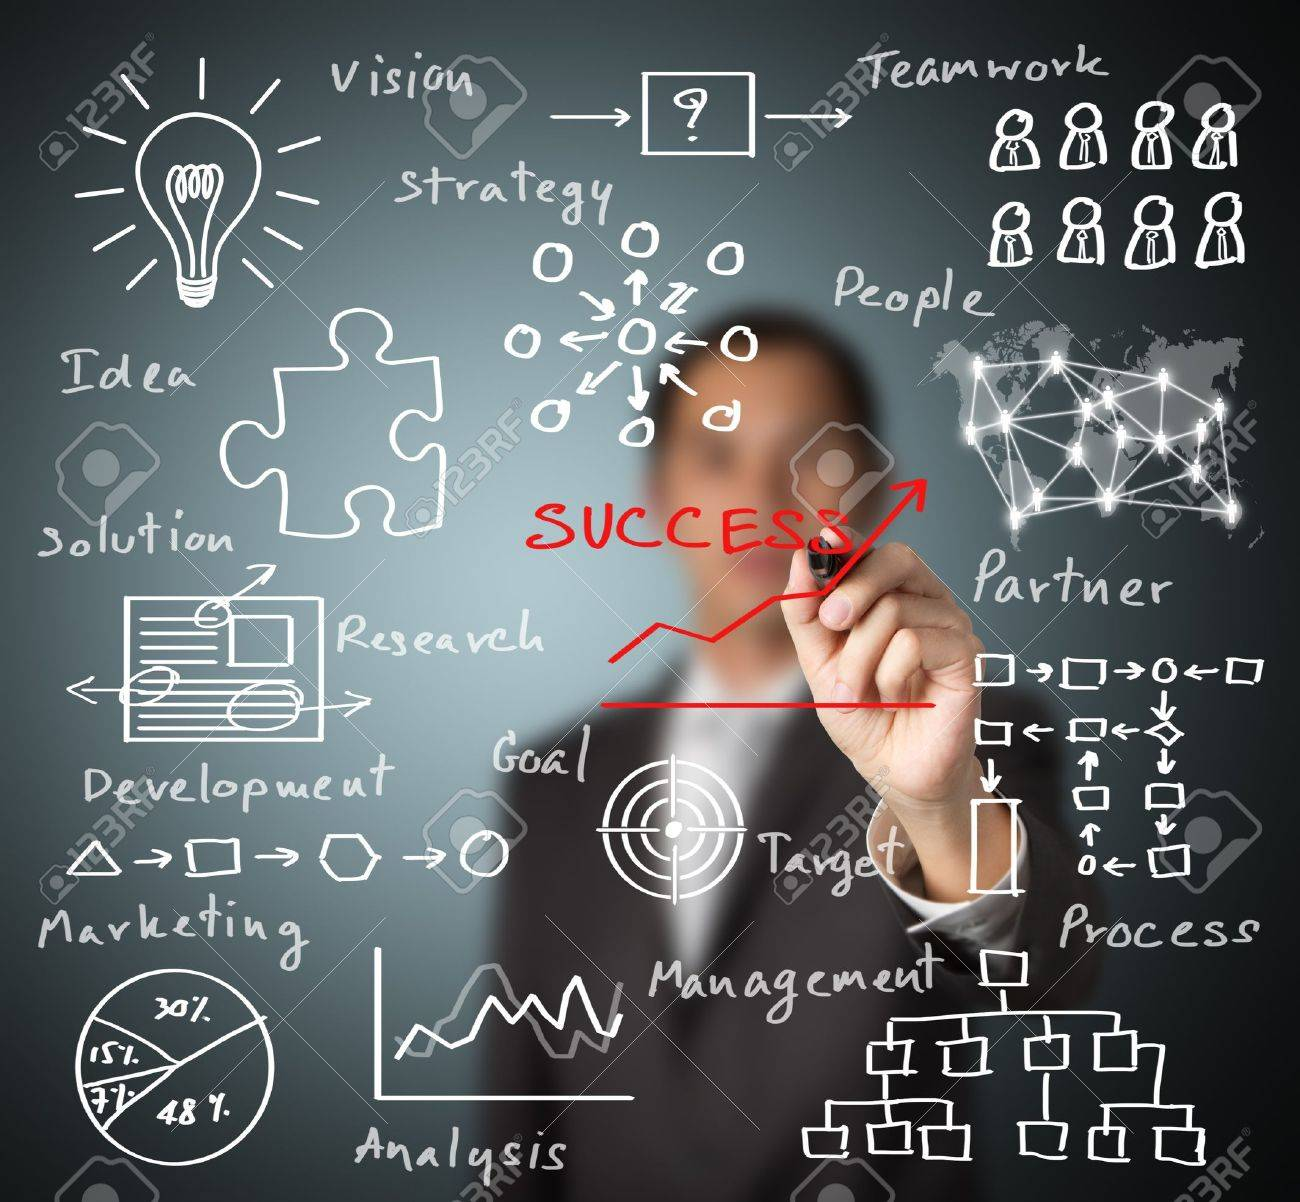 business man writing success by many  process   idea - vision - teamwork - partner -  goal - marketing - analysis - research - development - strategy - management Stock Photo - 14899866